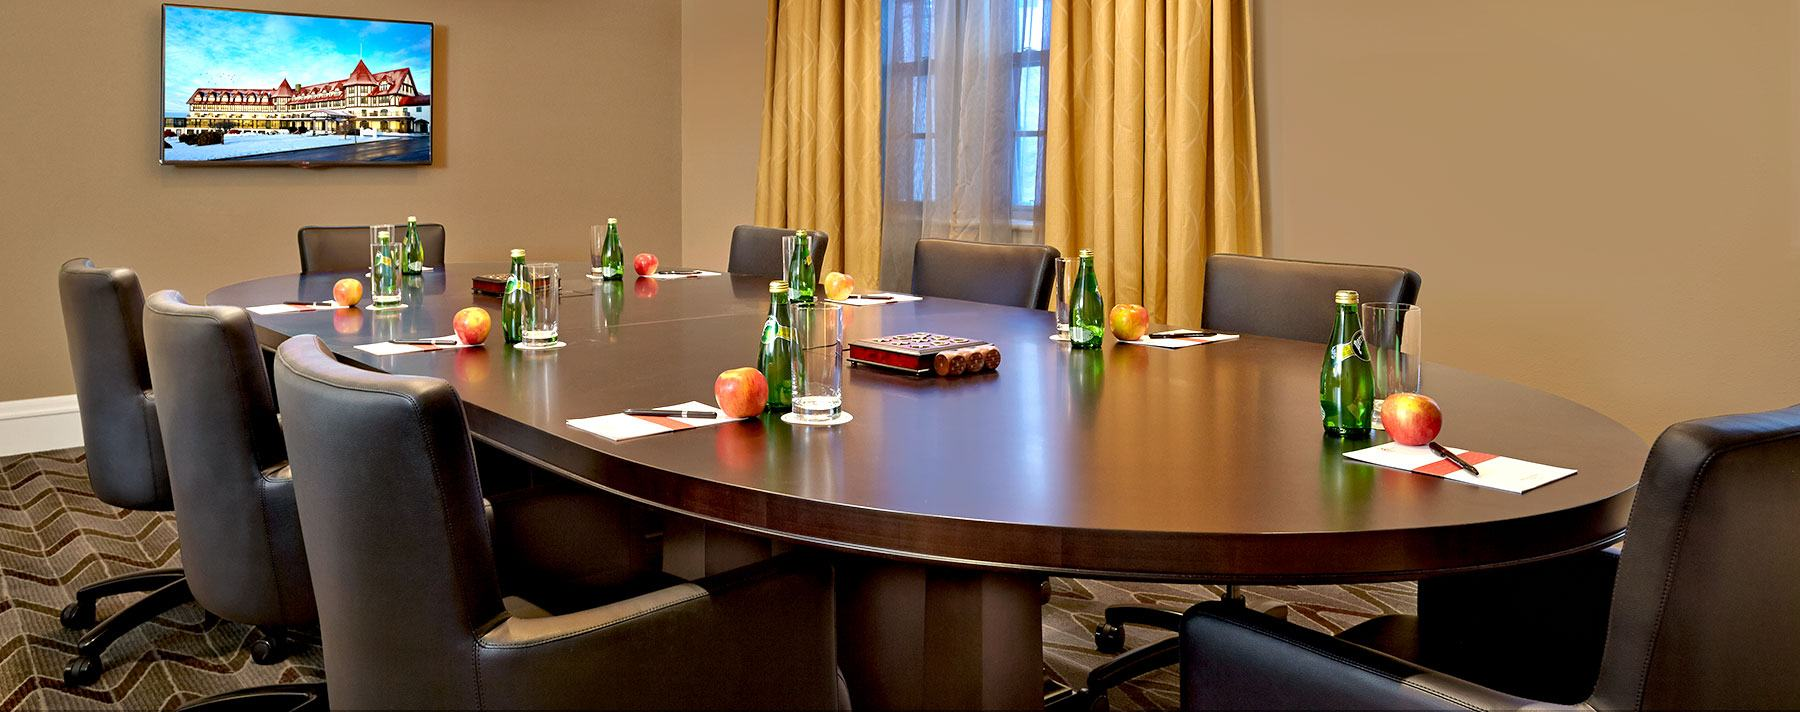 Meetings & Events at Algonquinresort, Andrews By The Sea